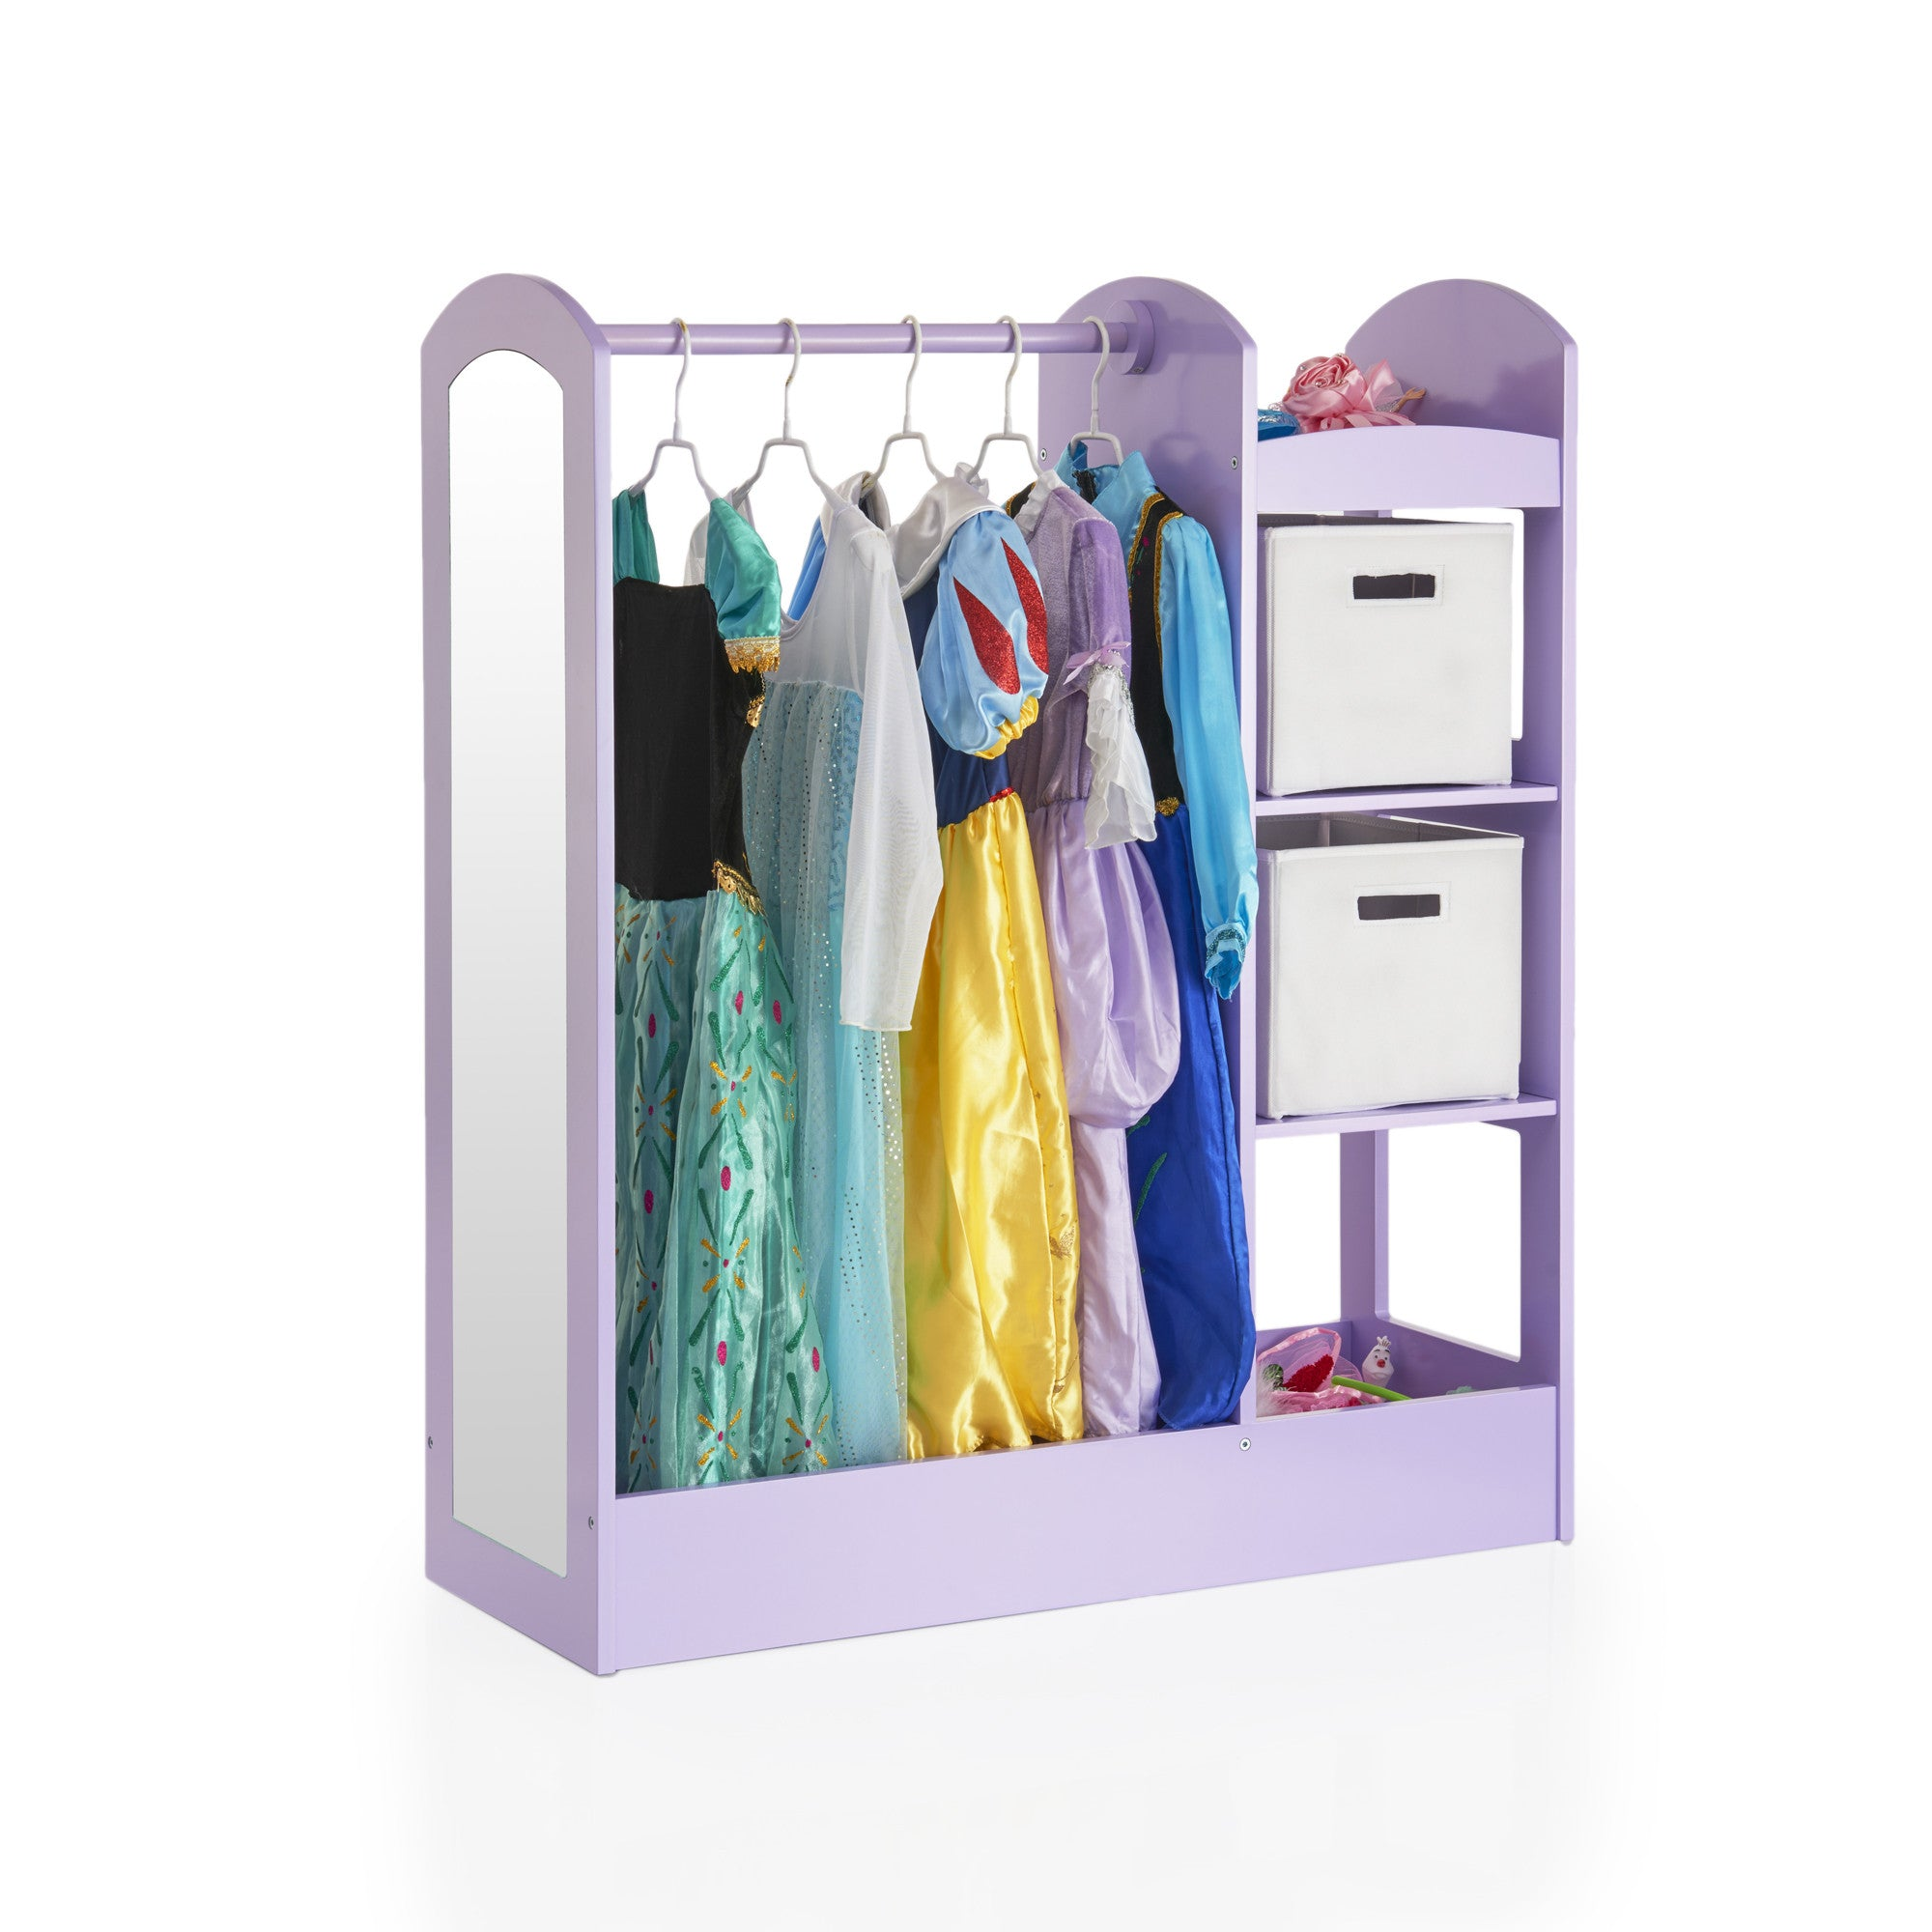 Guidecraft See and Store Dress Up Center – Lavender G98404